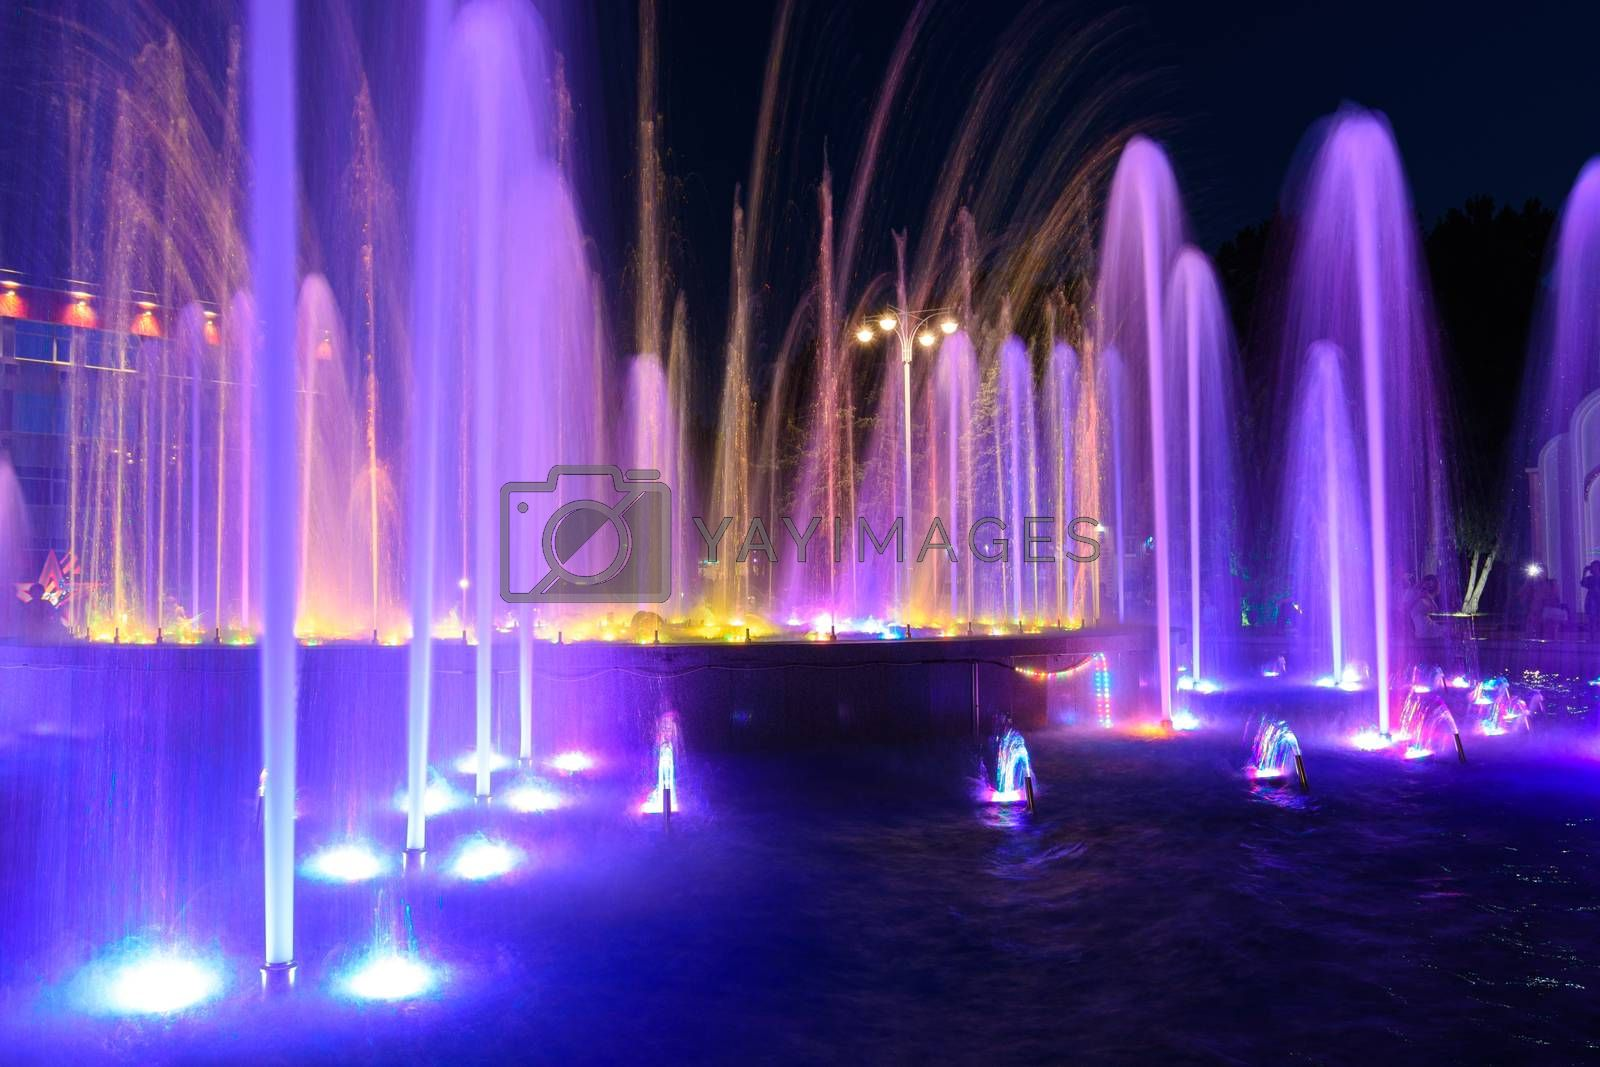 Jets of a night multi-colored illuminated fountain close-up